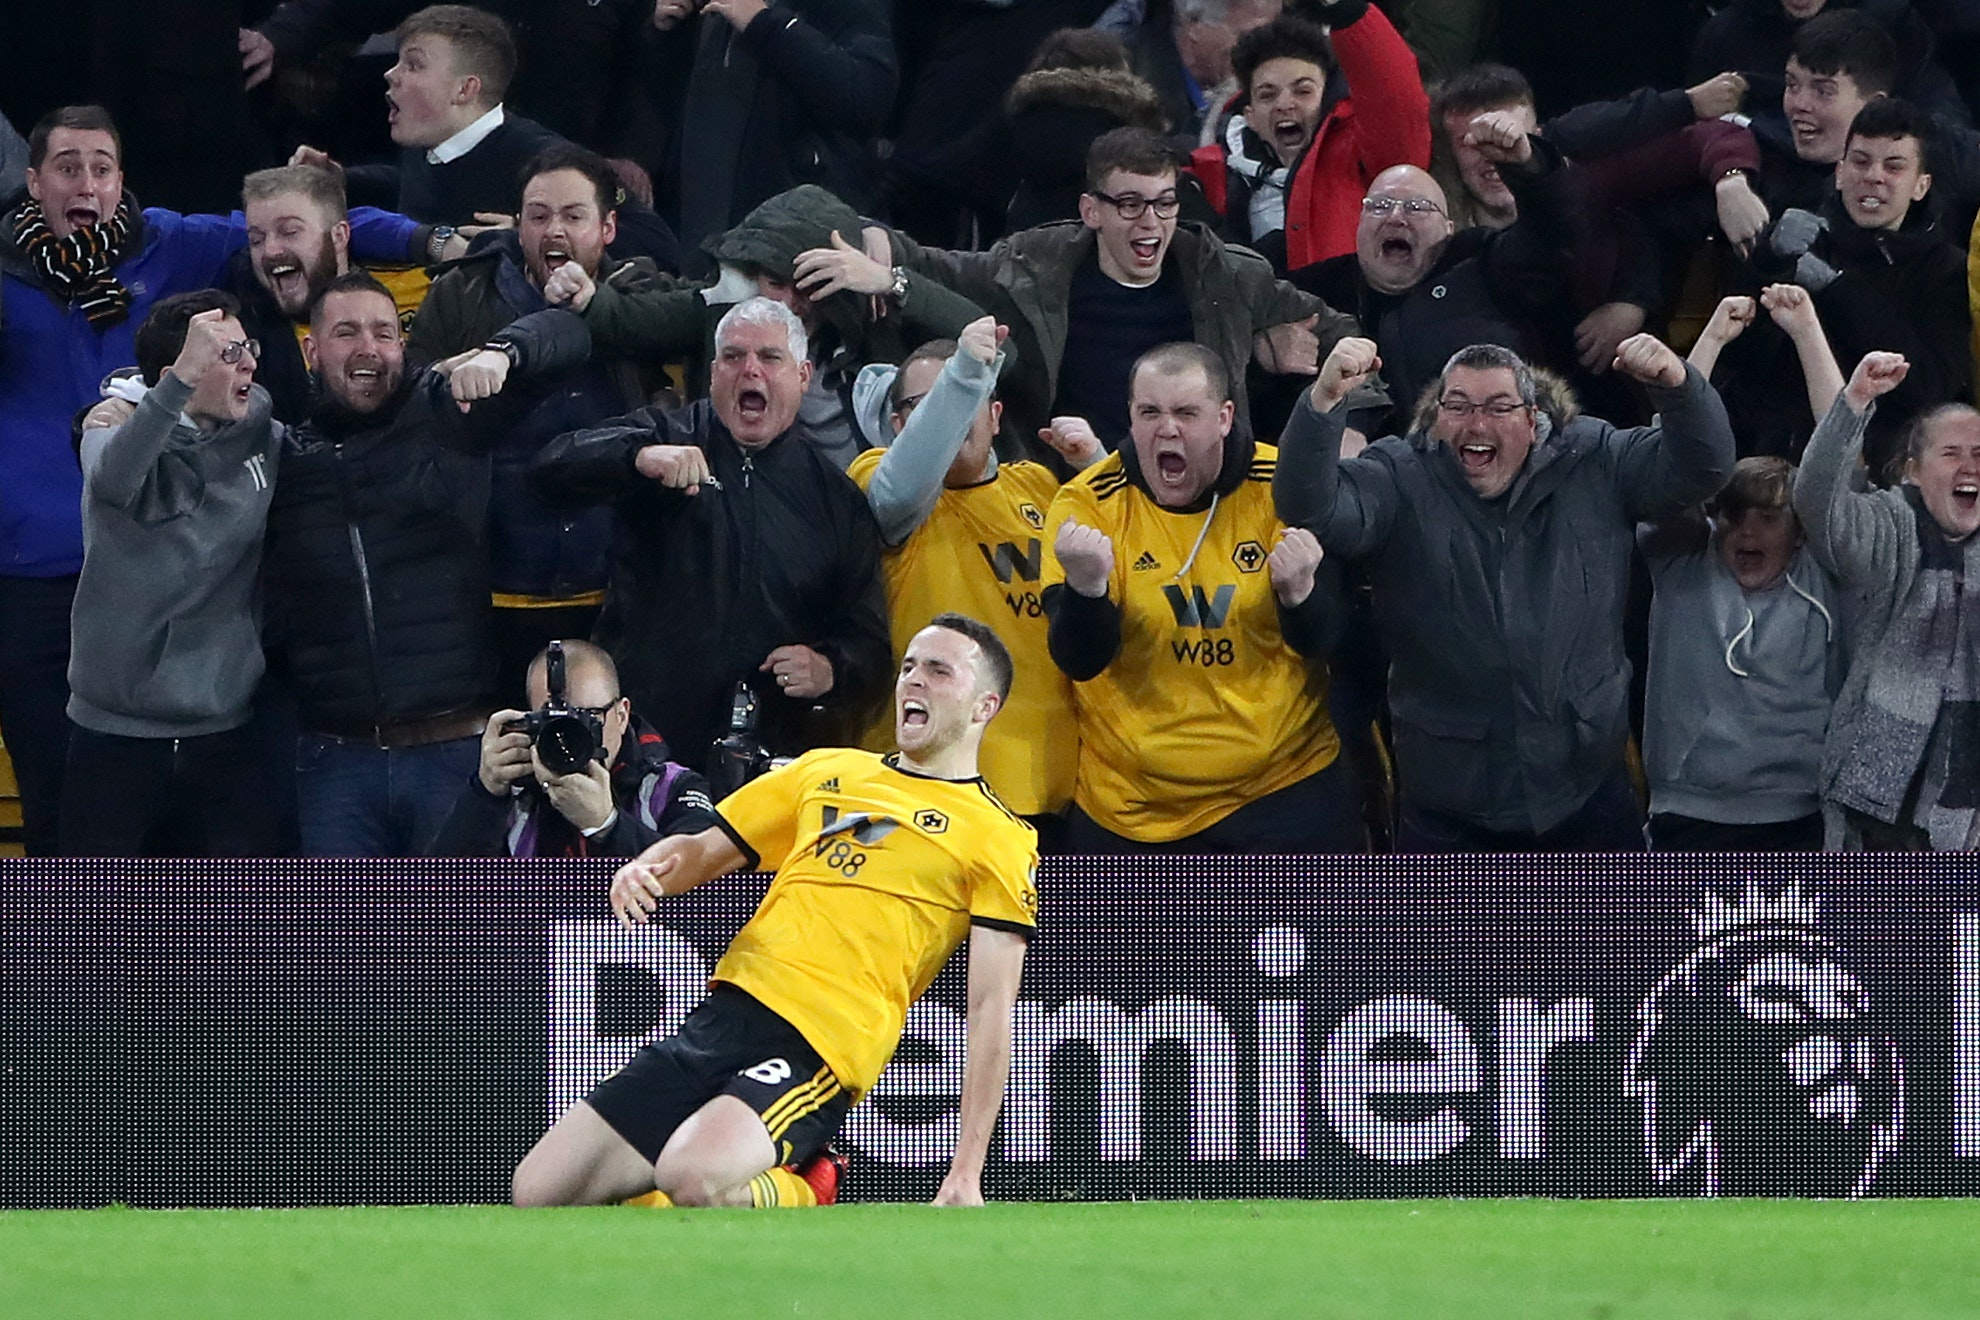 Diogo Jota celebrates his winner in Wolves' 2-1 victory over Chelsea